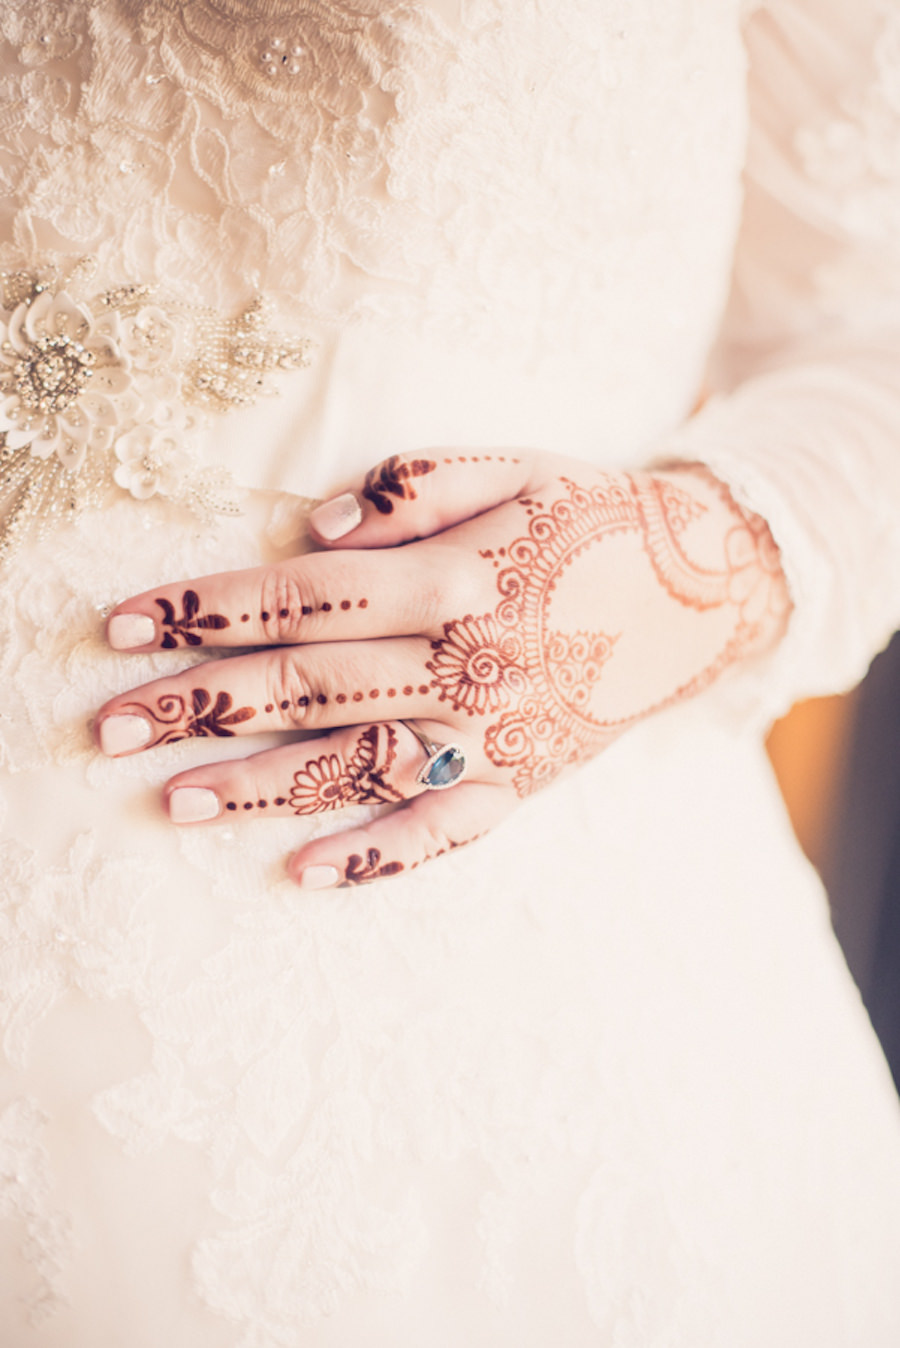 Bridal Portrait with Indian Henna and Long Sleeve Illusion, Lace and Rhinestone Floral Accent Wedding Dress   Tampa Bay Wedding Photographer Luxe Light Photography